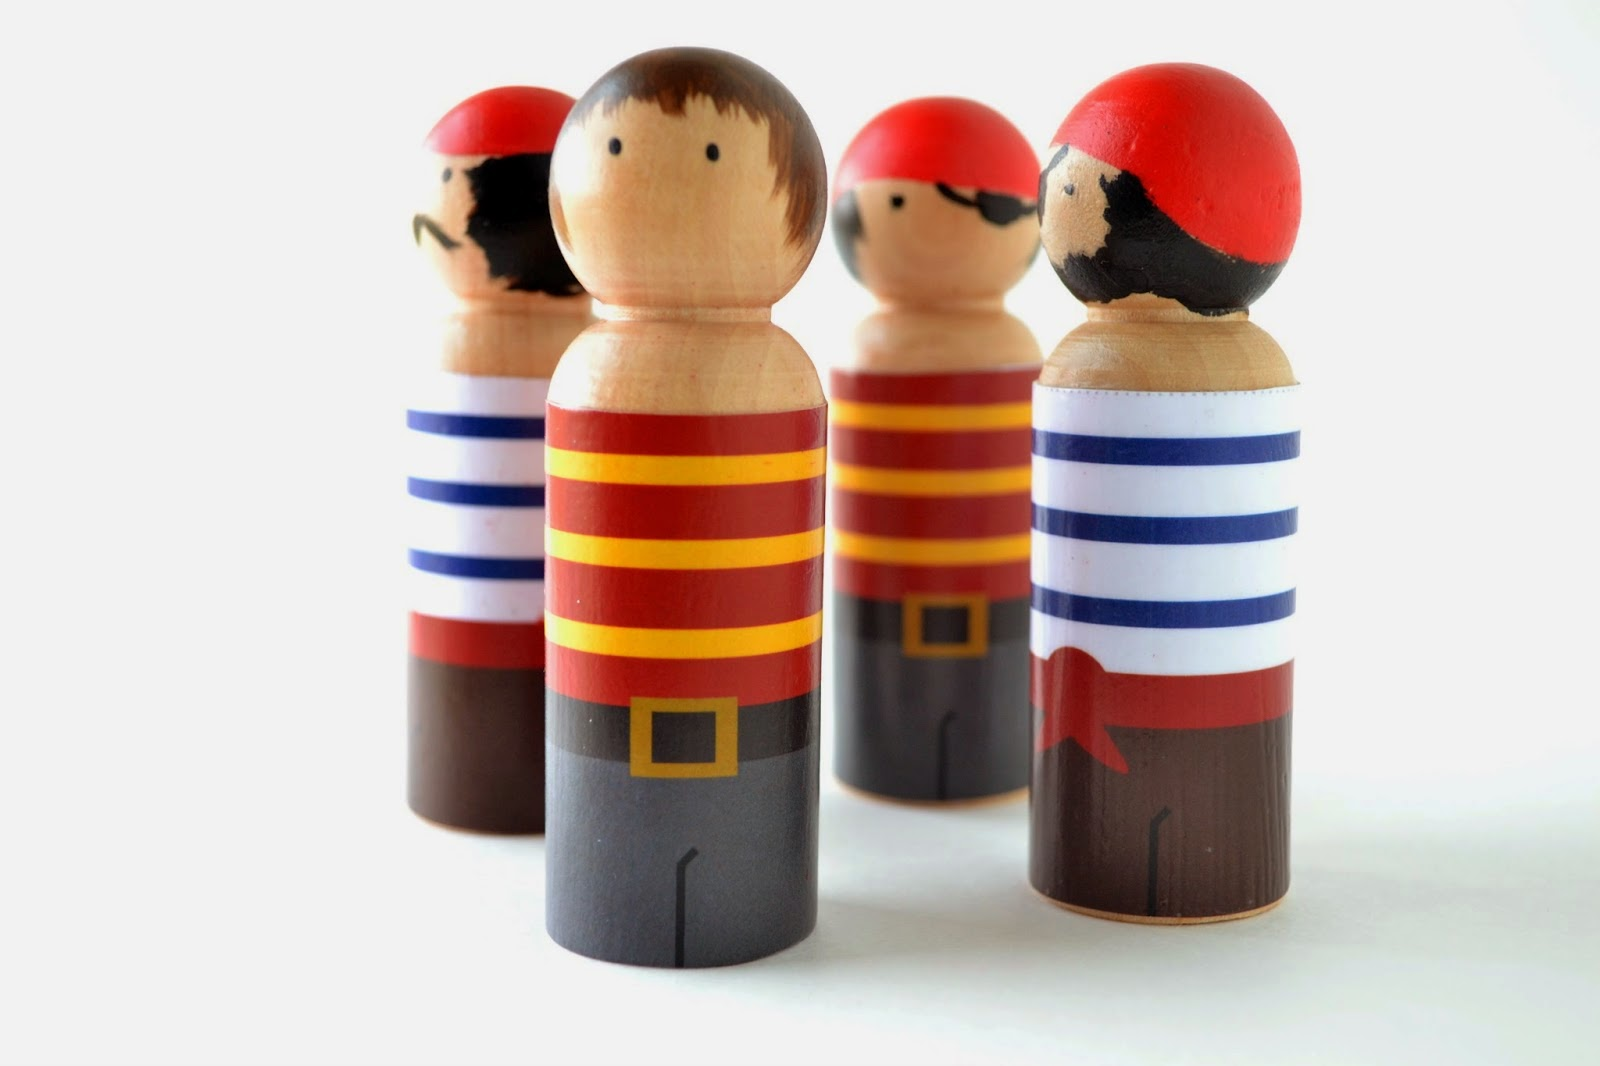 http://www.untrendylife.com/2014/03/peg-people-pirate-clothes-free-printable.html